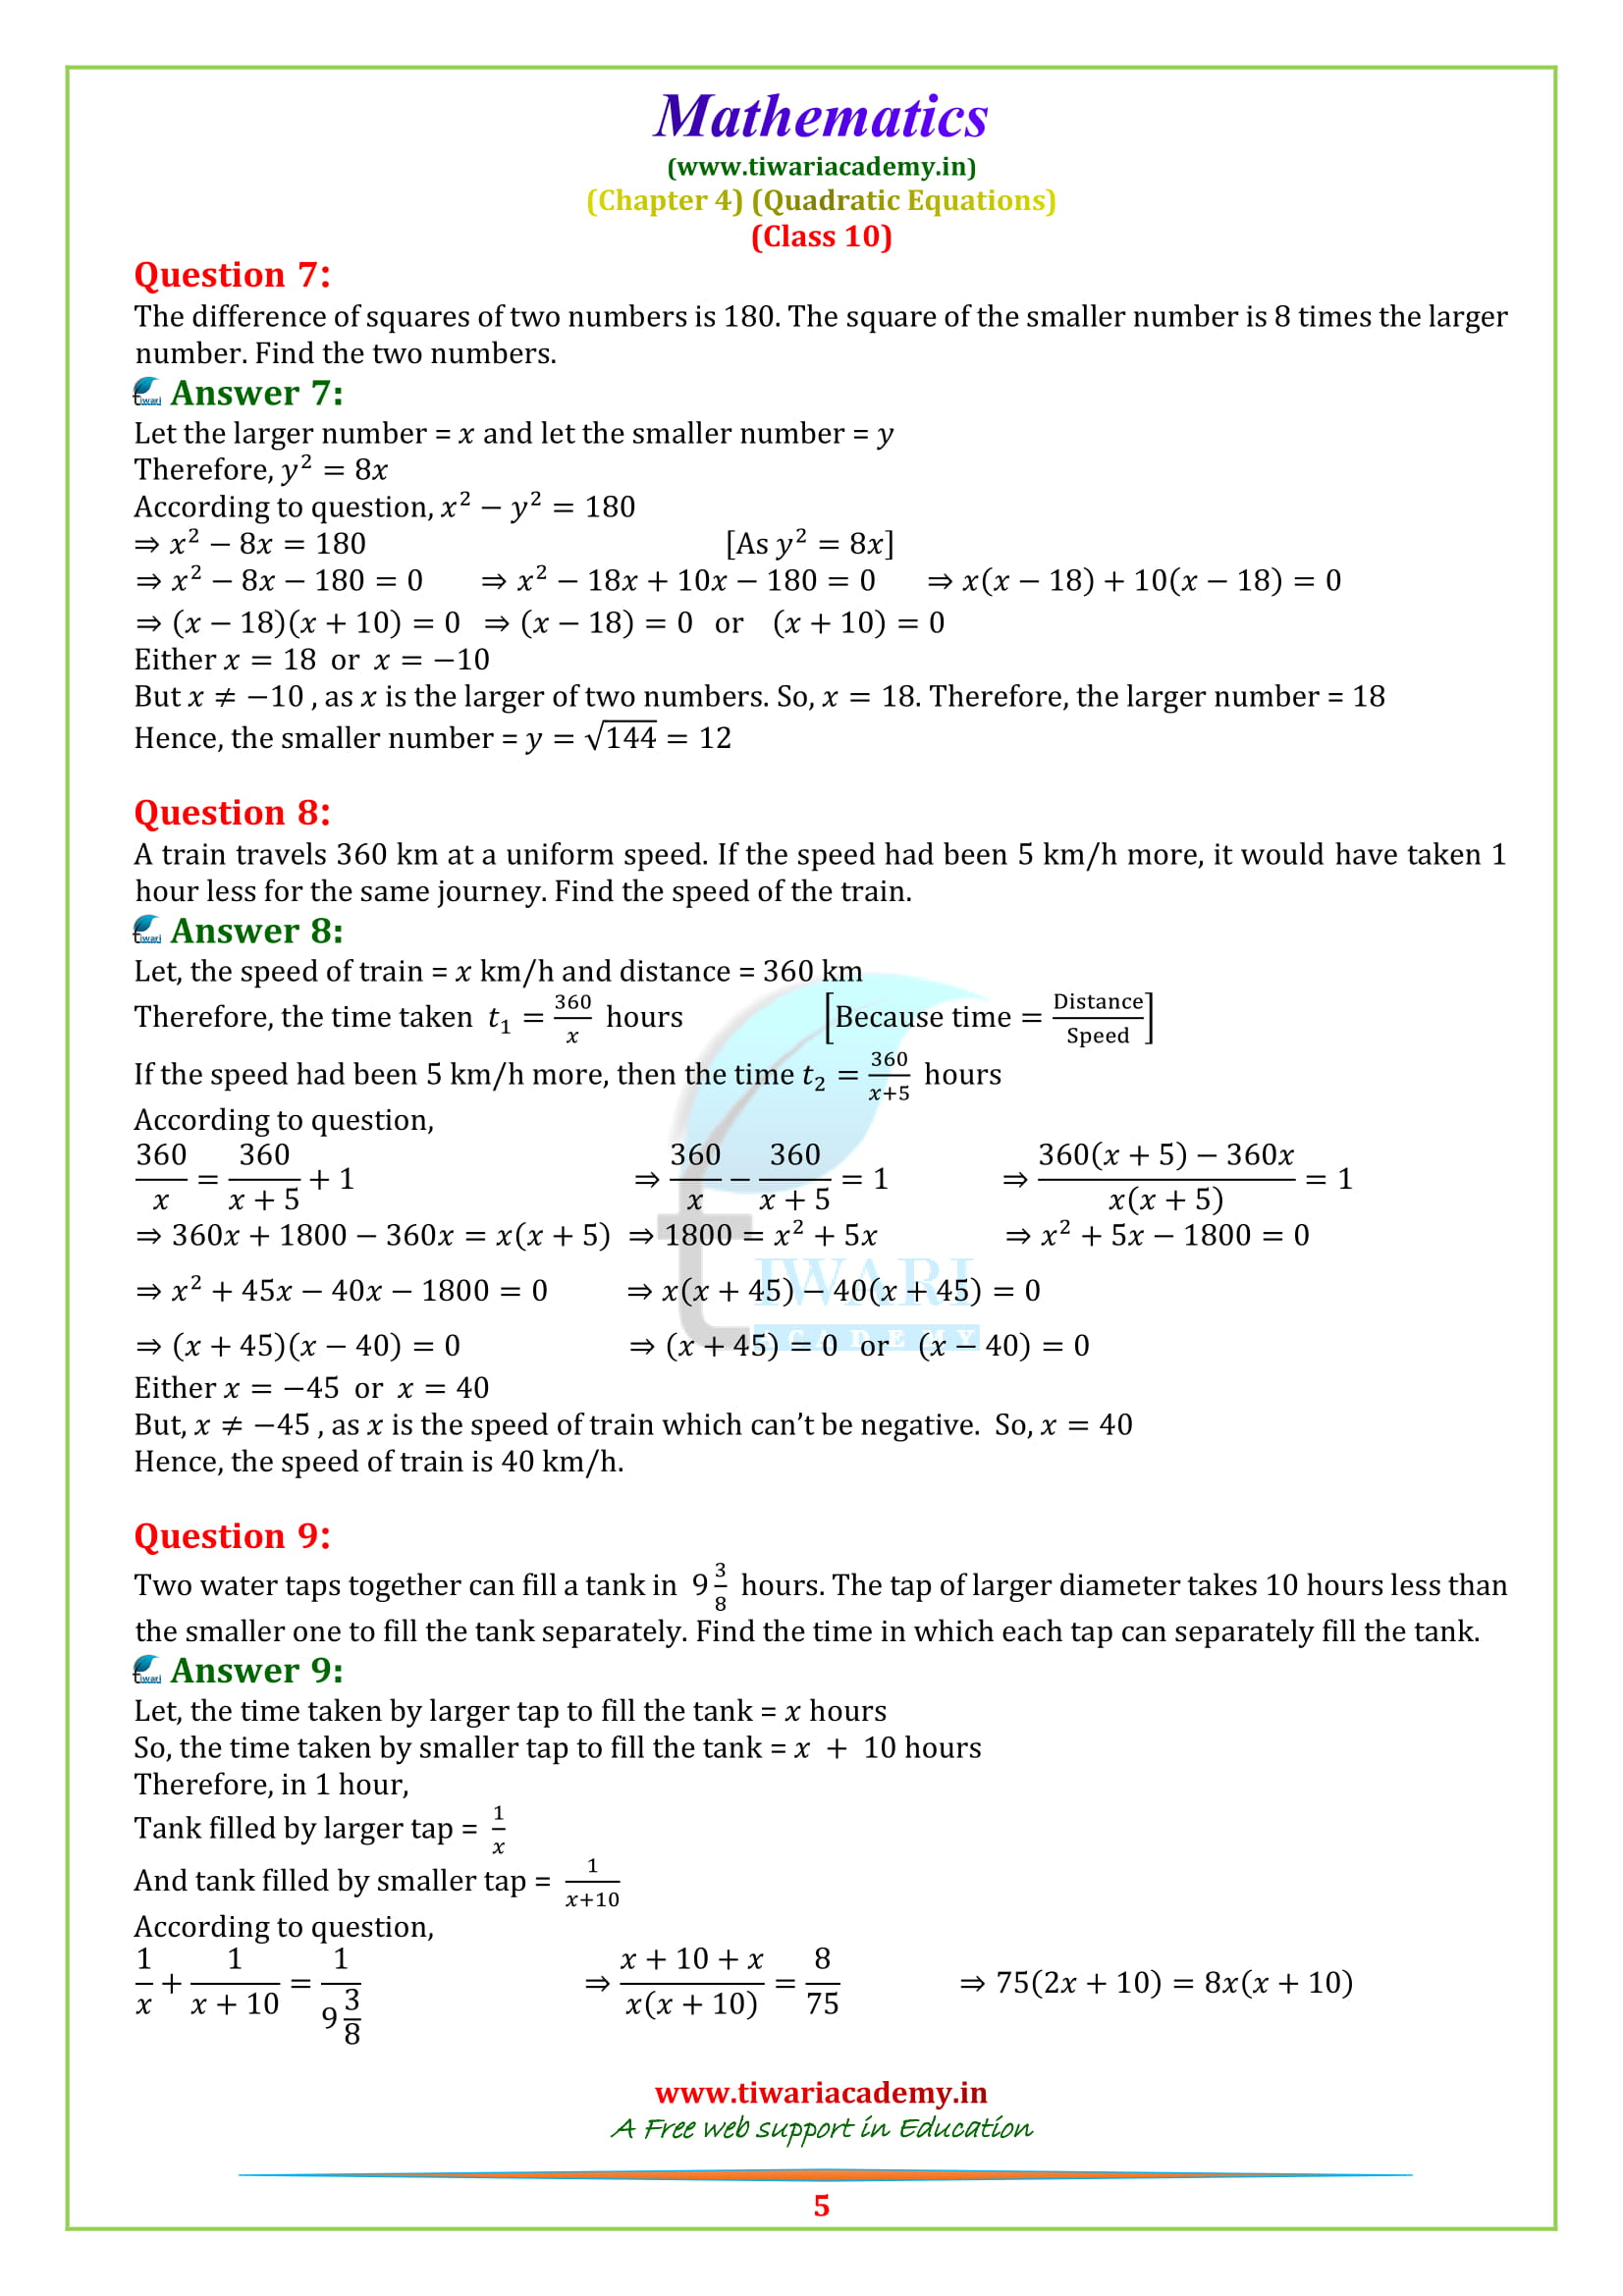 NCERT Solutions for class 10 maths Exercise 4.3 question 4, 5, 6, 7, 8